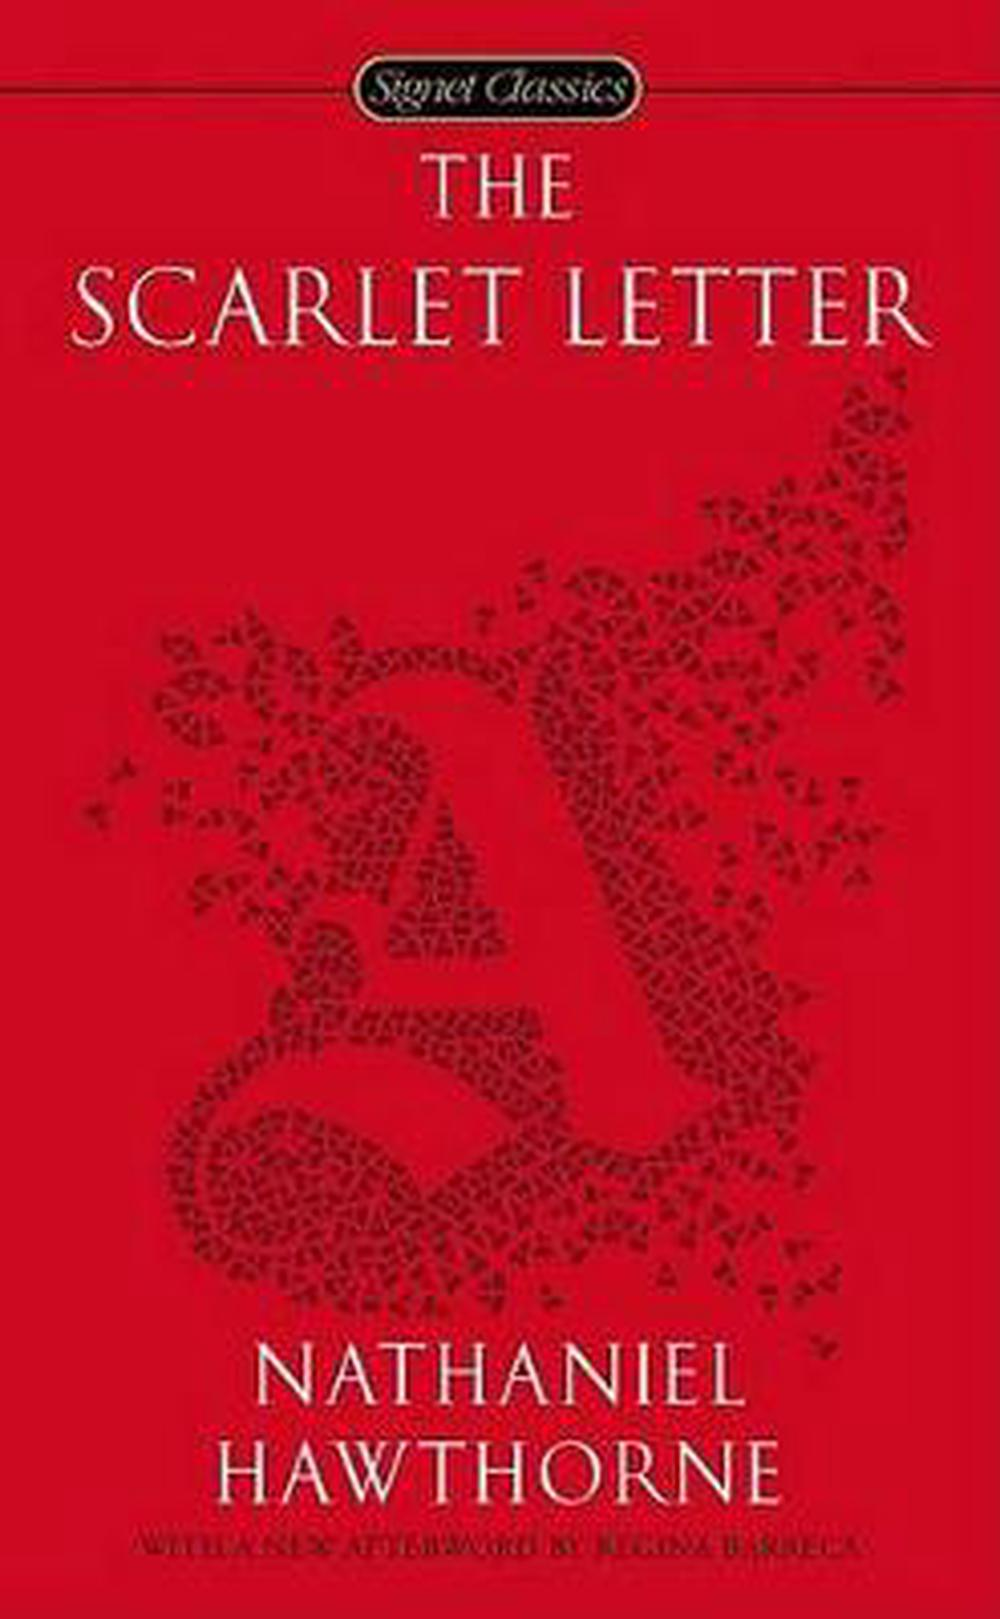 the symbol of the letter a in the novel the scarlet letter by nathaniel hawthorne Hester prynne – hester prynne is the main character and principal protagonist of the scarlet lettershe is a married woman living in puritan-era boston hester is from england, where she married an elderly man who sent her to the colonies ahead of him.